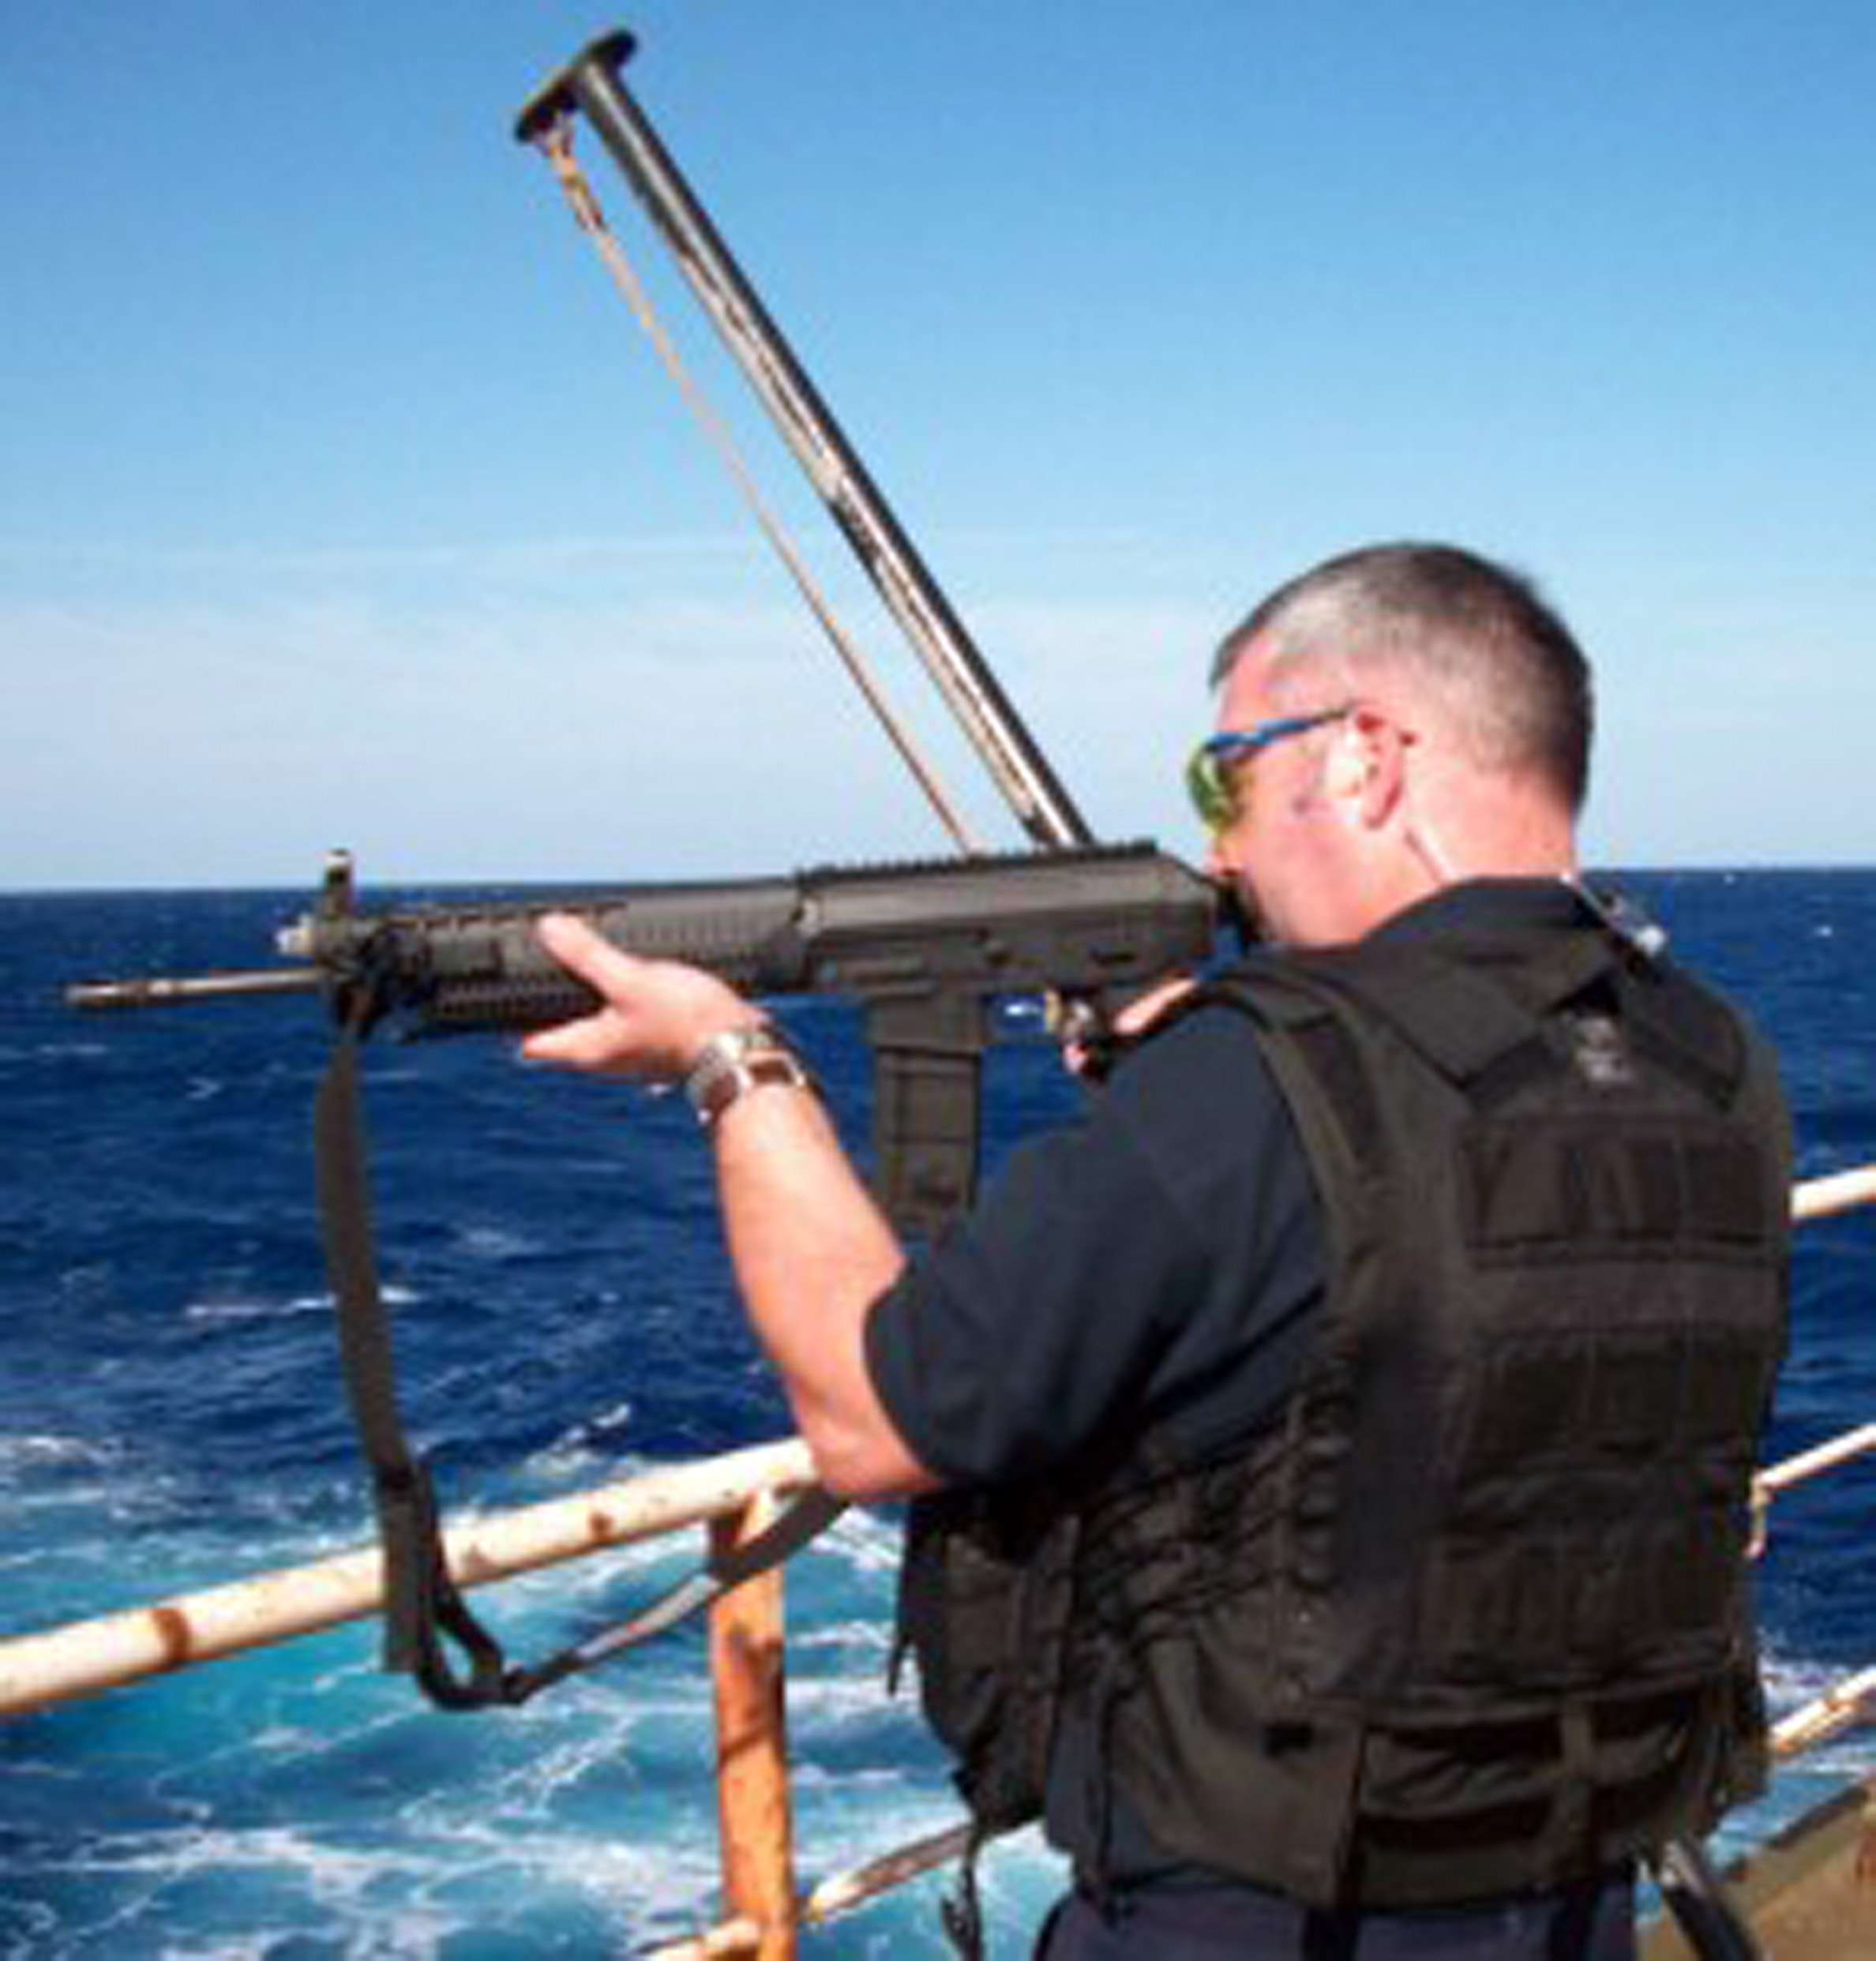 Suez Rules Maritime Security Review